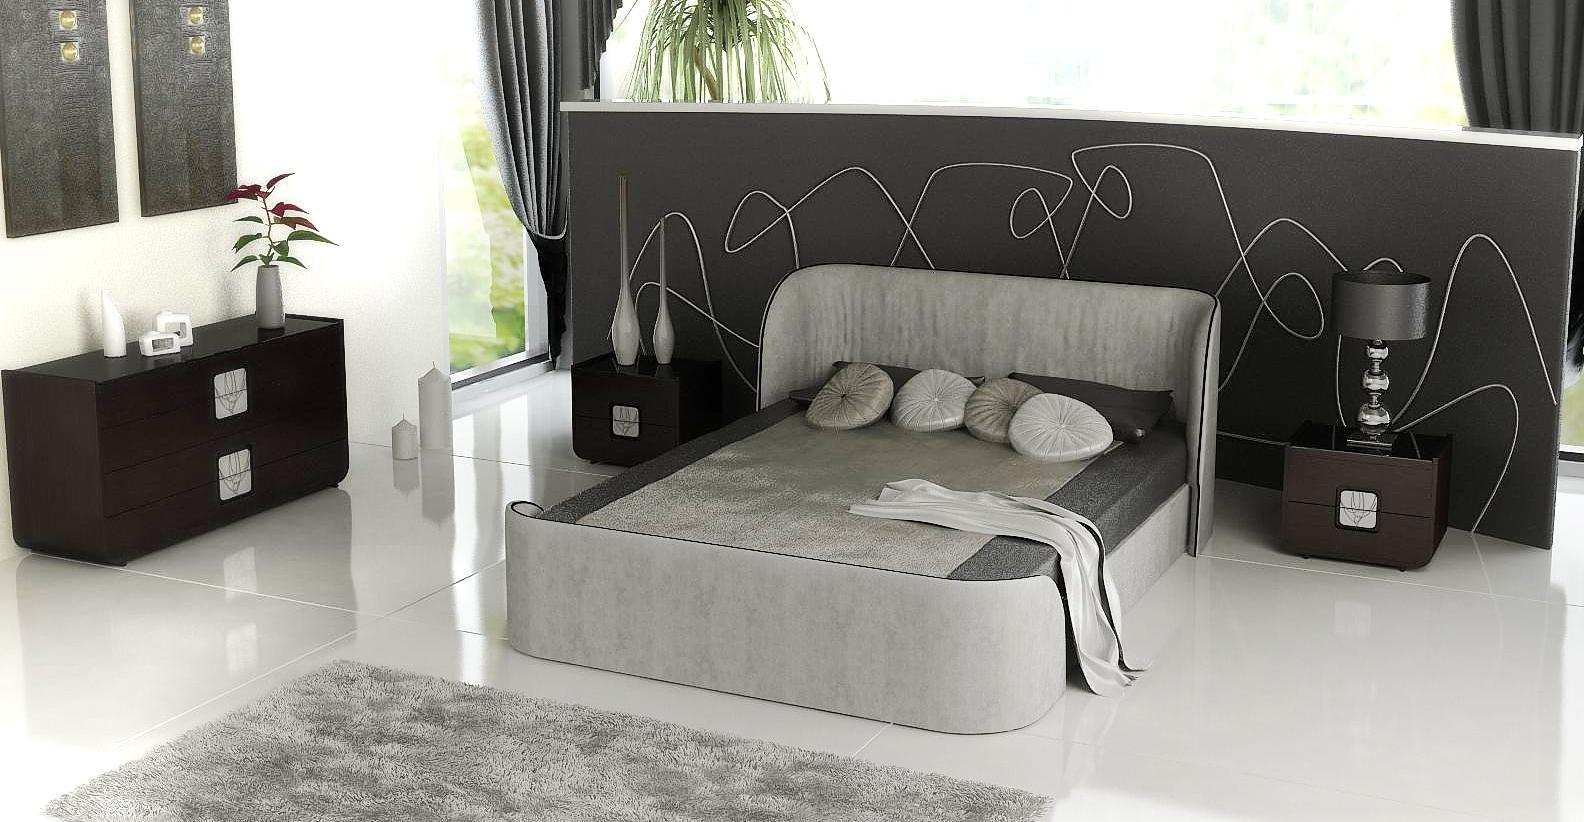 Arredamento camera da letto design picture to pin on for Arredamento camera da letto design